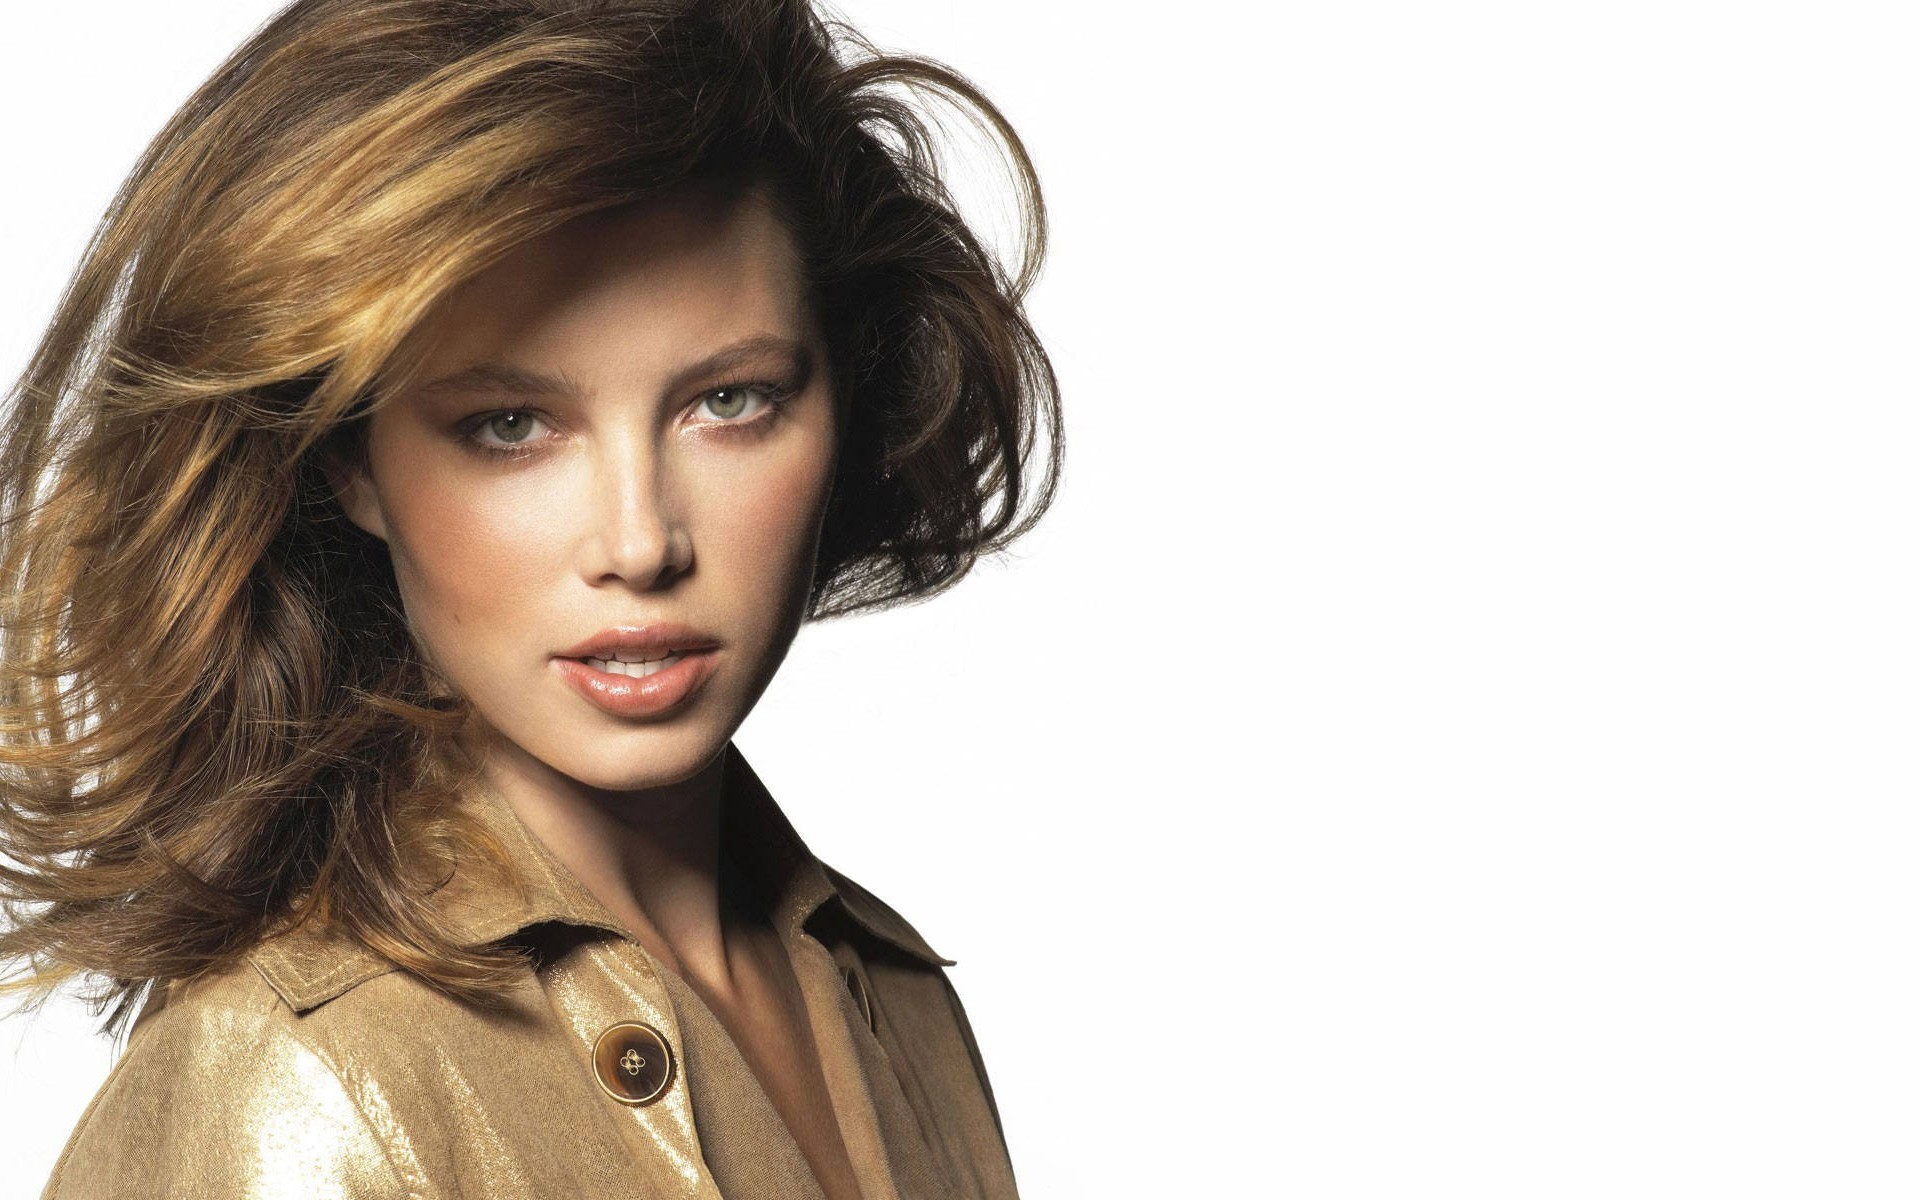 gorgeous jessica biel wallpaper 43019